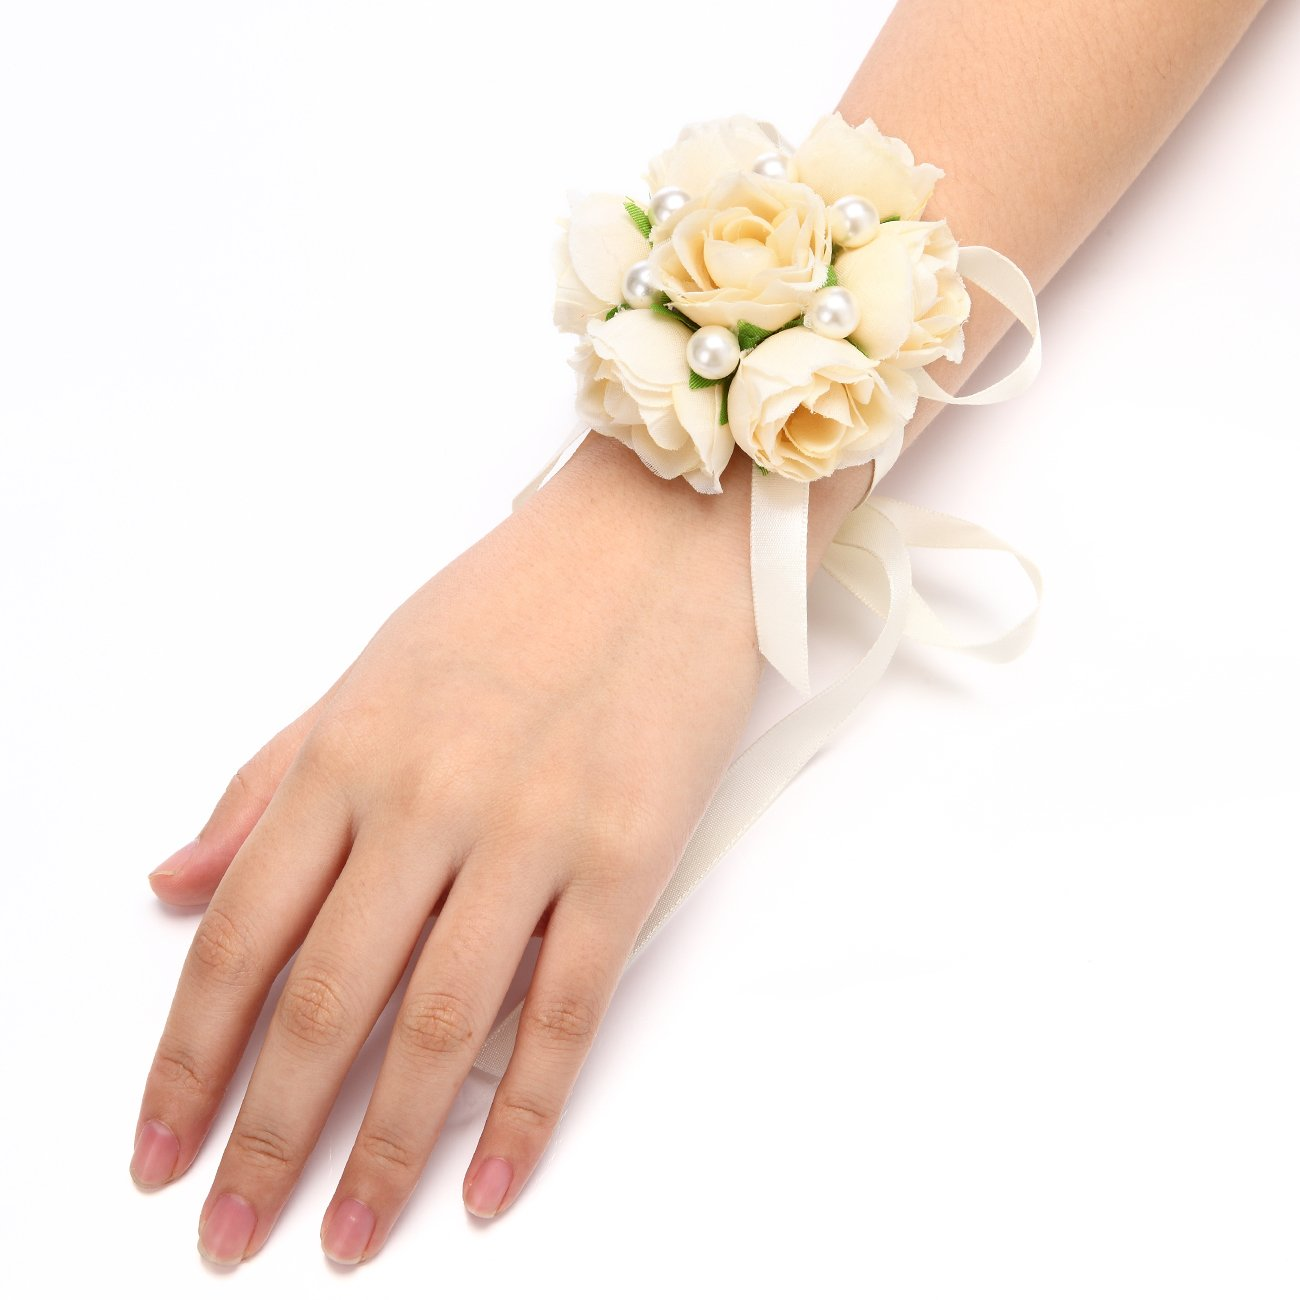 FAYBOX-Girl-Bridesmaid-Wedding-Wrist-Corsage-Party-Prom-Hand-Flower-Decor-Pack-of-2-Champagne